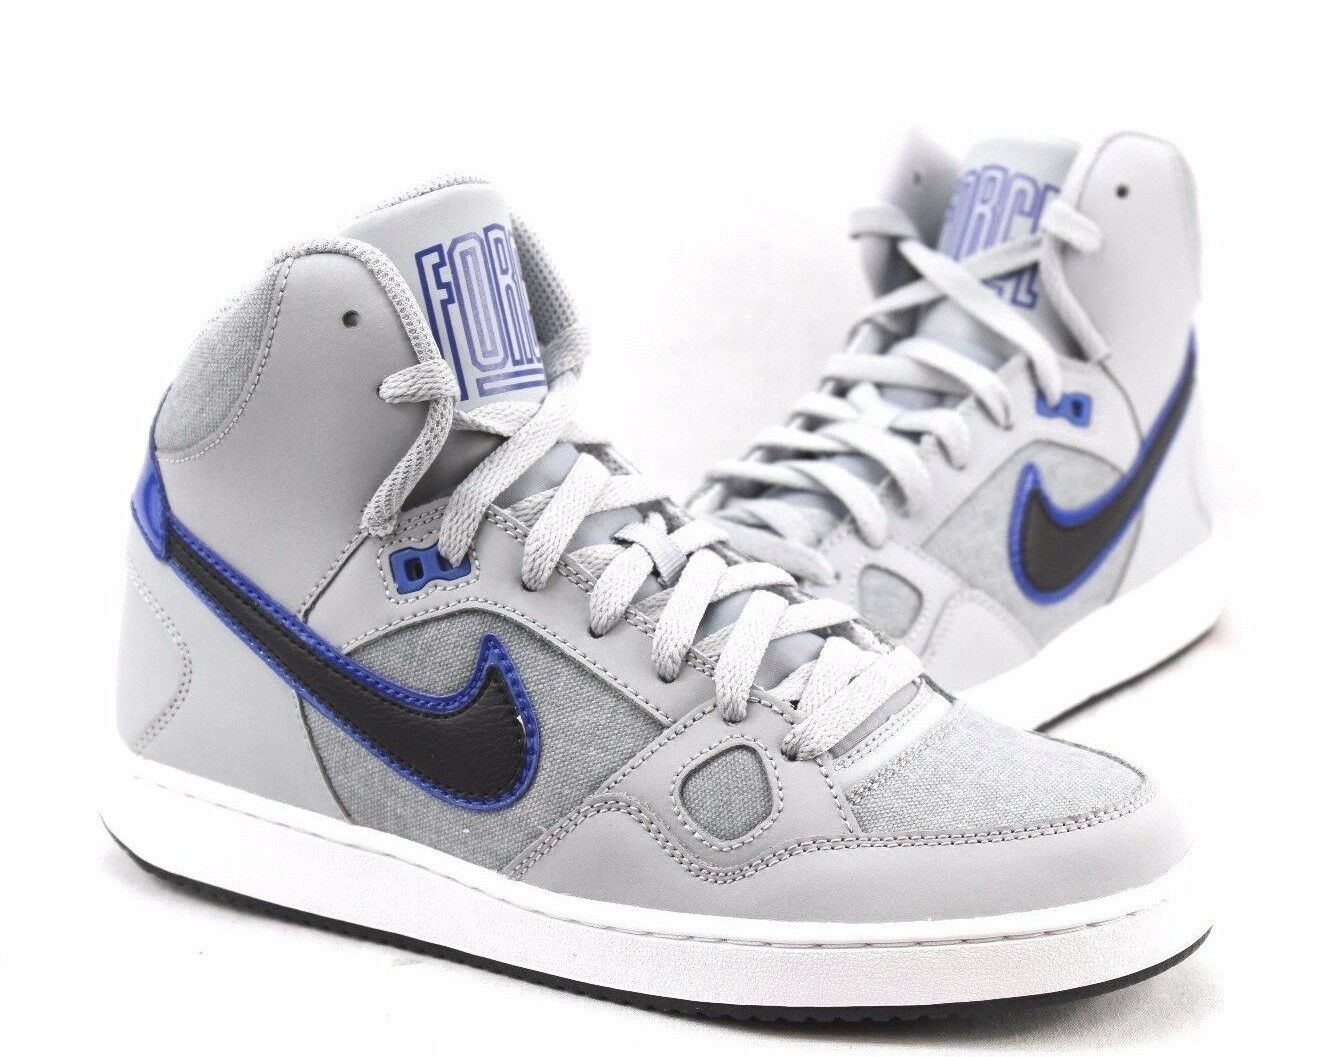 Nike Men's shoes 'SON OF FORCE' Mid Basketball Sneakers 616281-014 Men's Sz  9.5